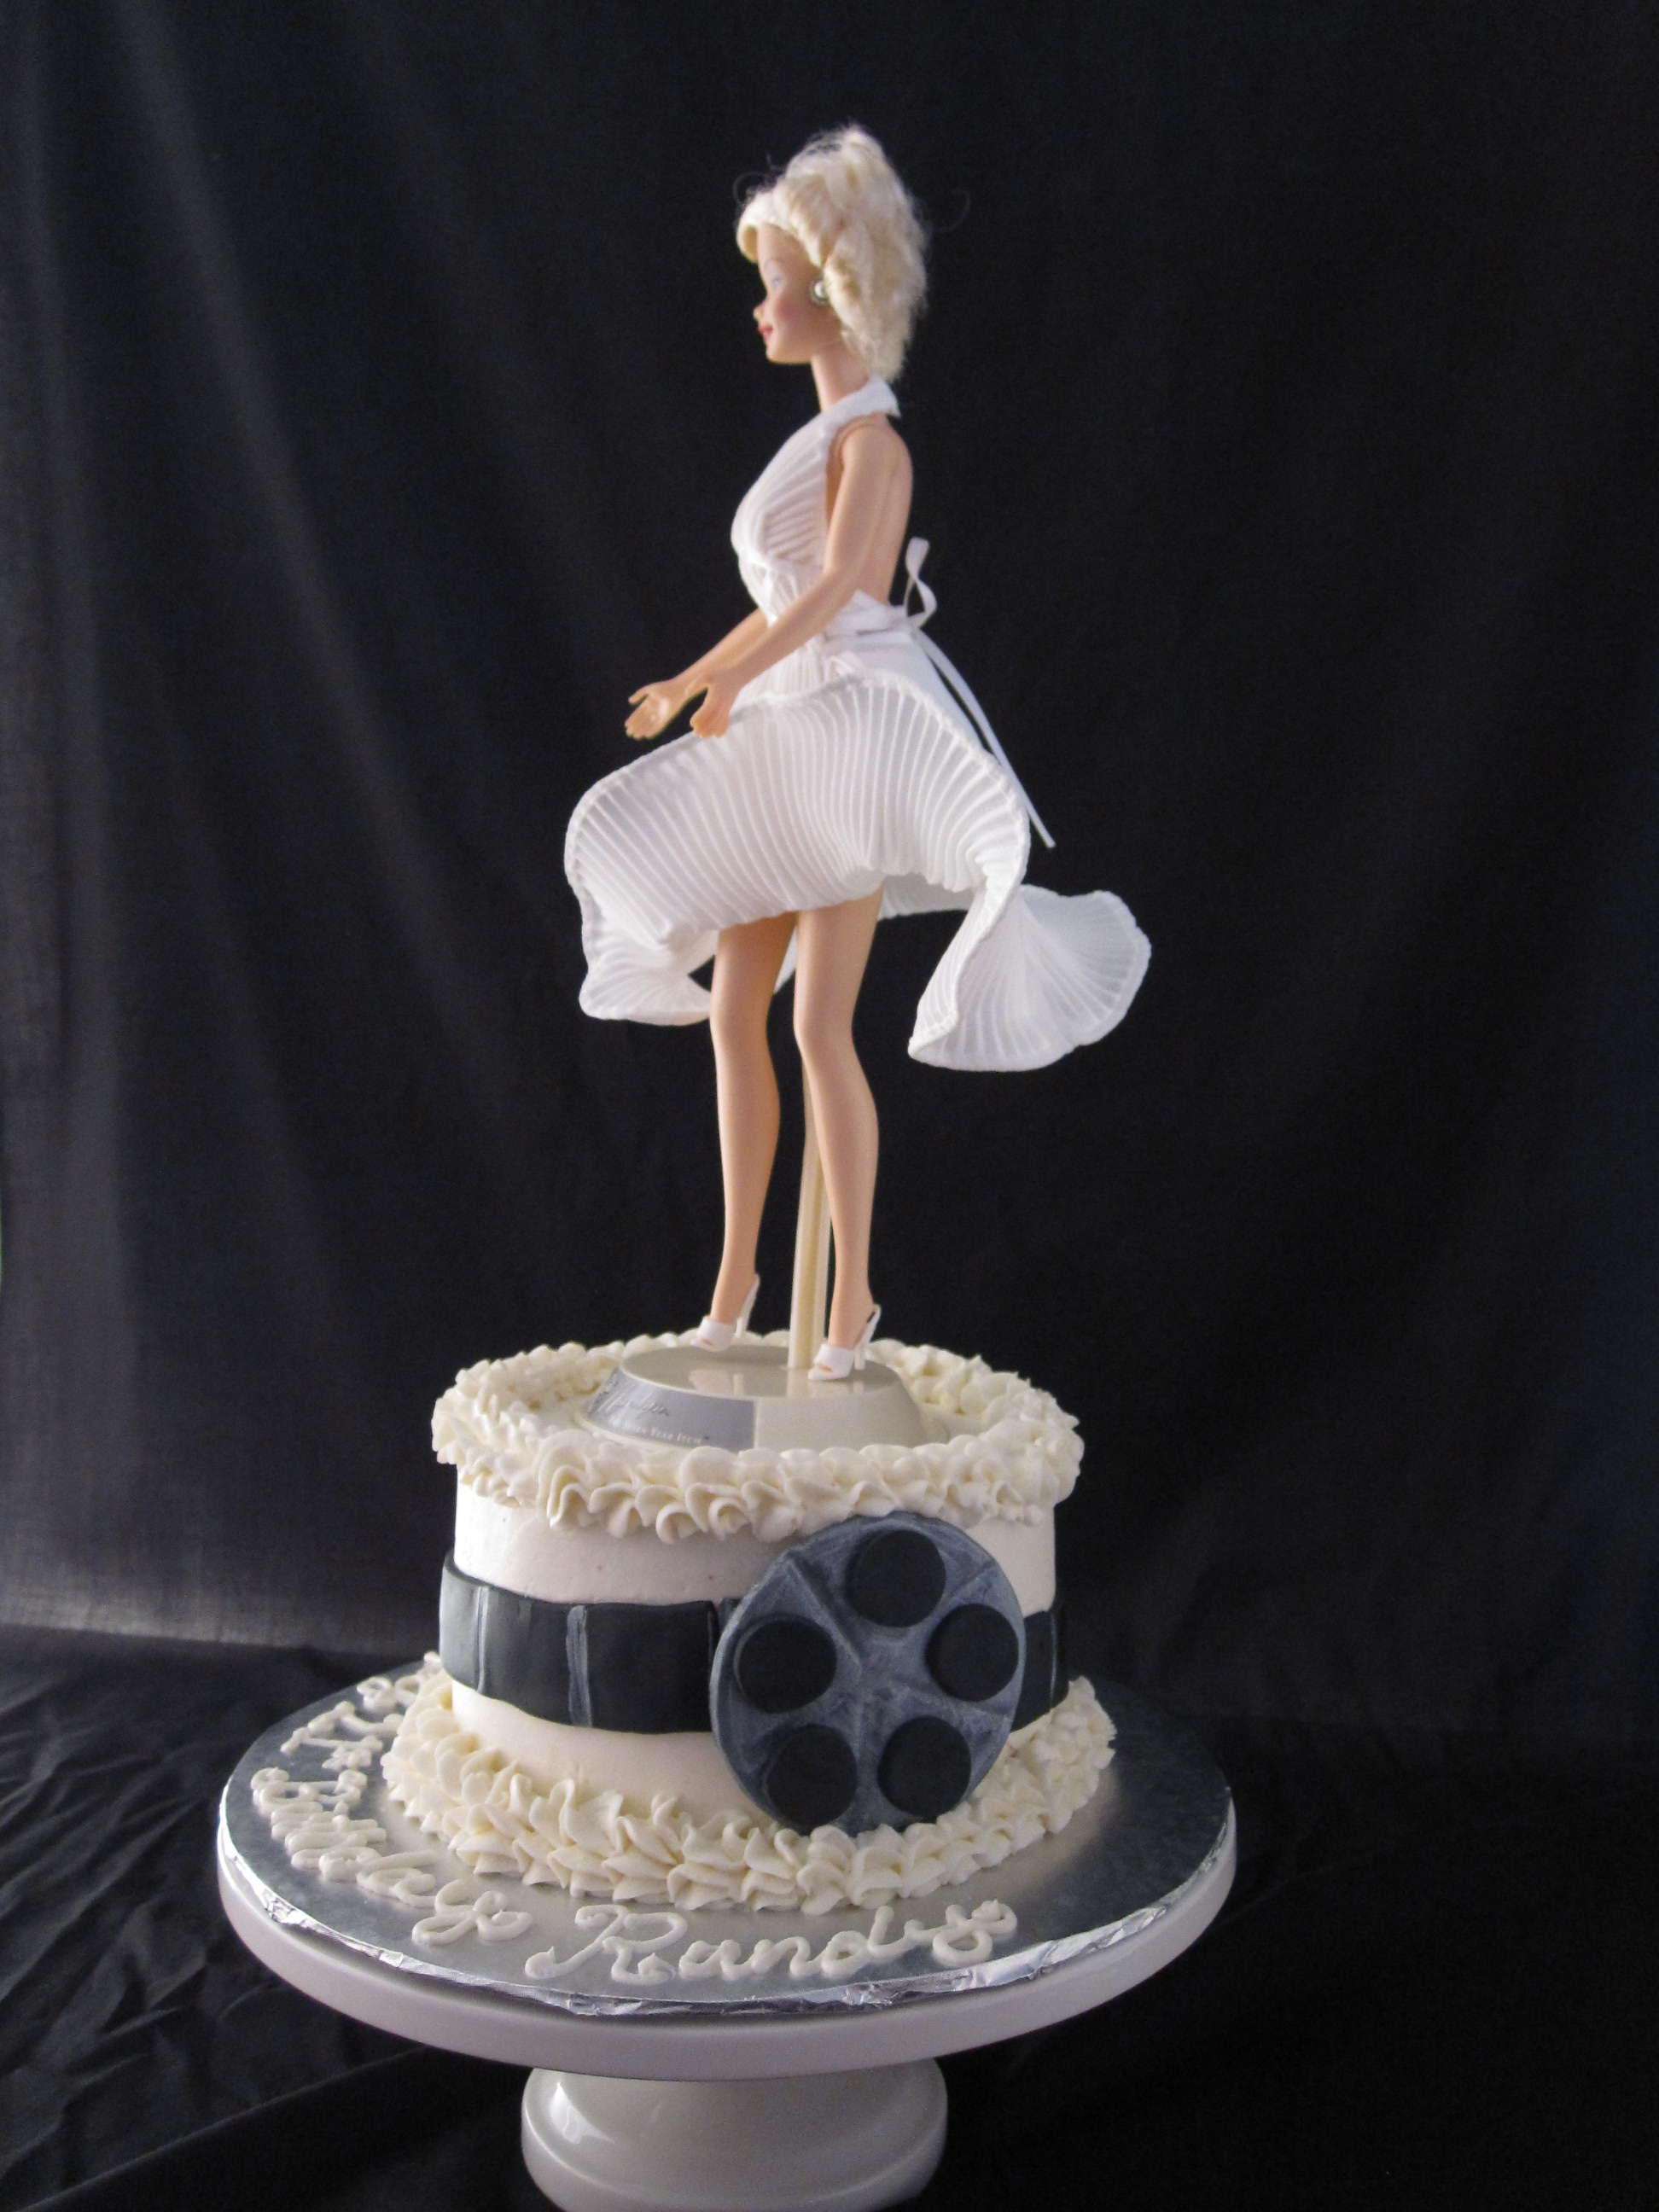 Marilyn Monroe Cake The Twisted Sifter